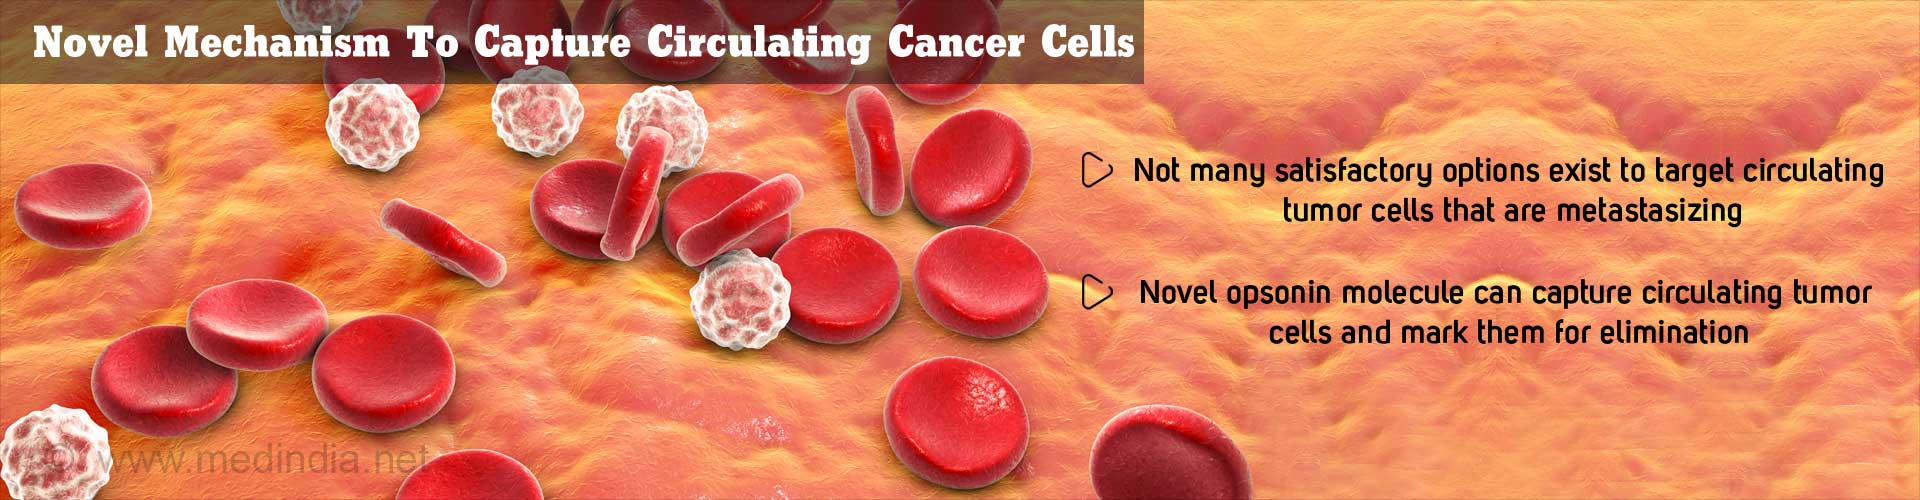 novel mechanism to capture circulating cancer cells